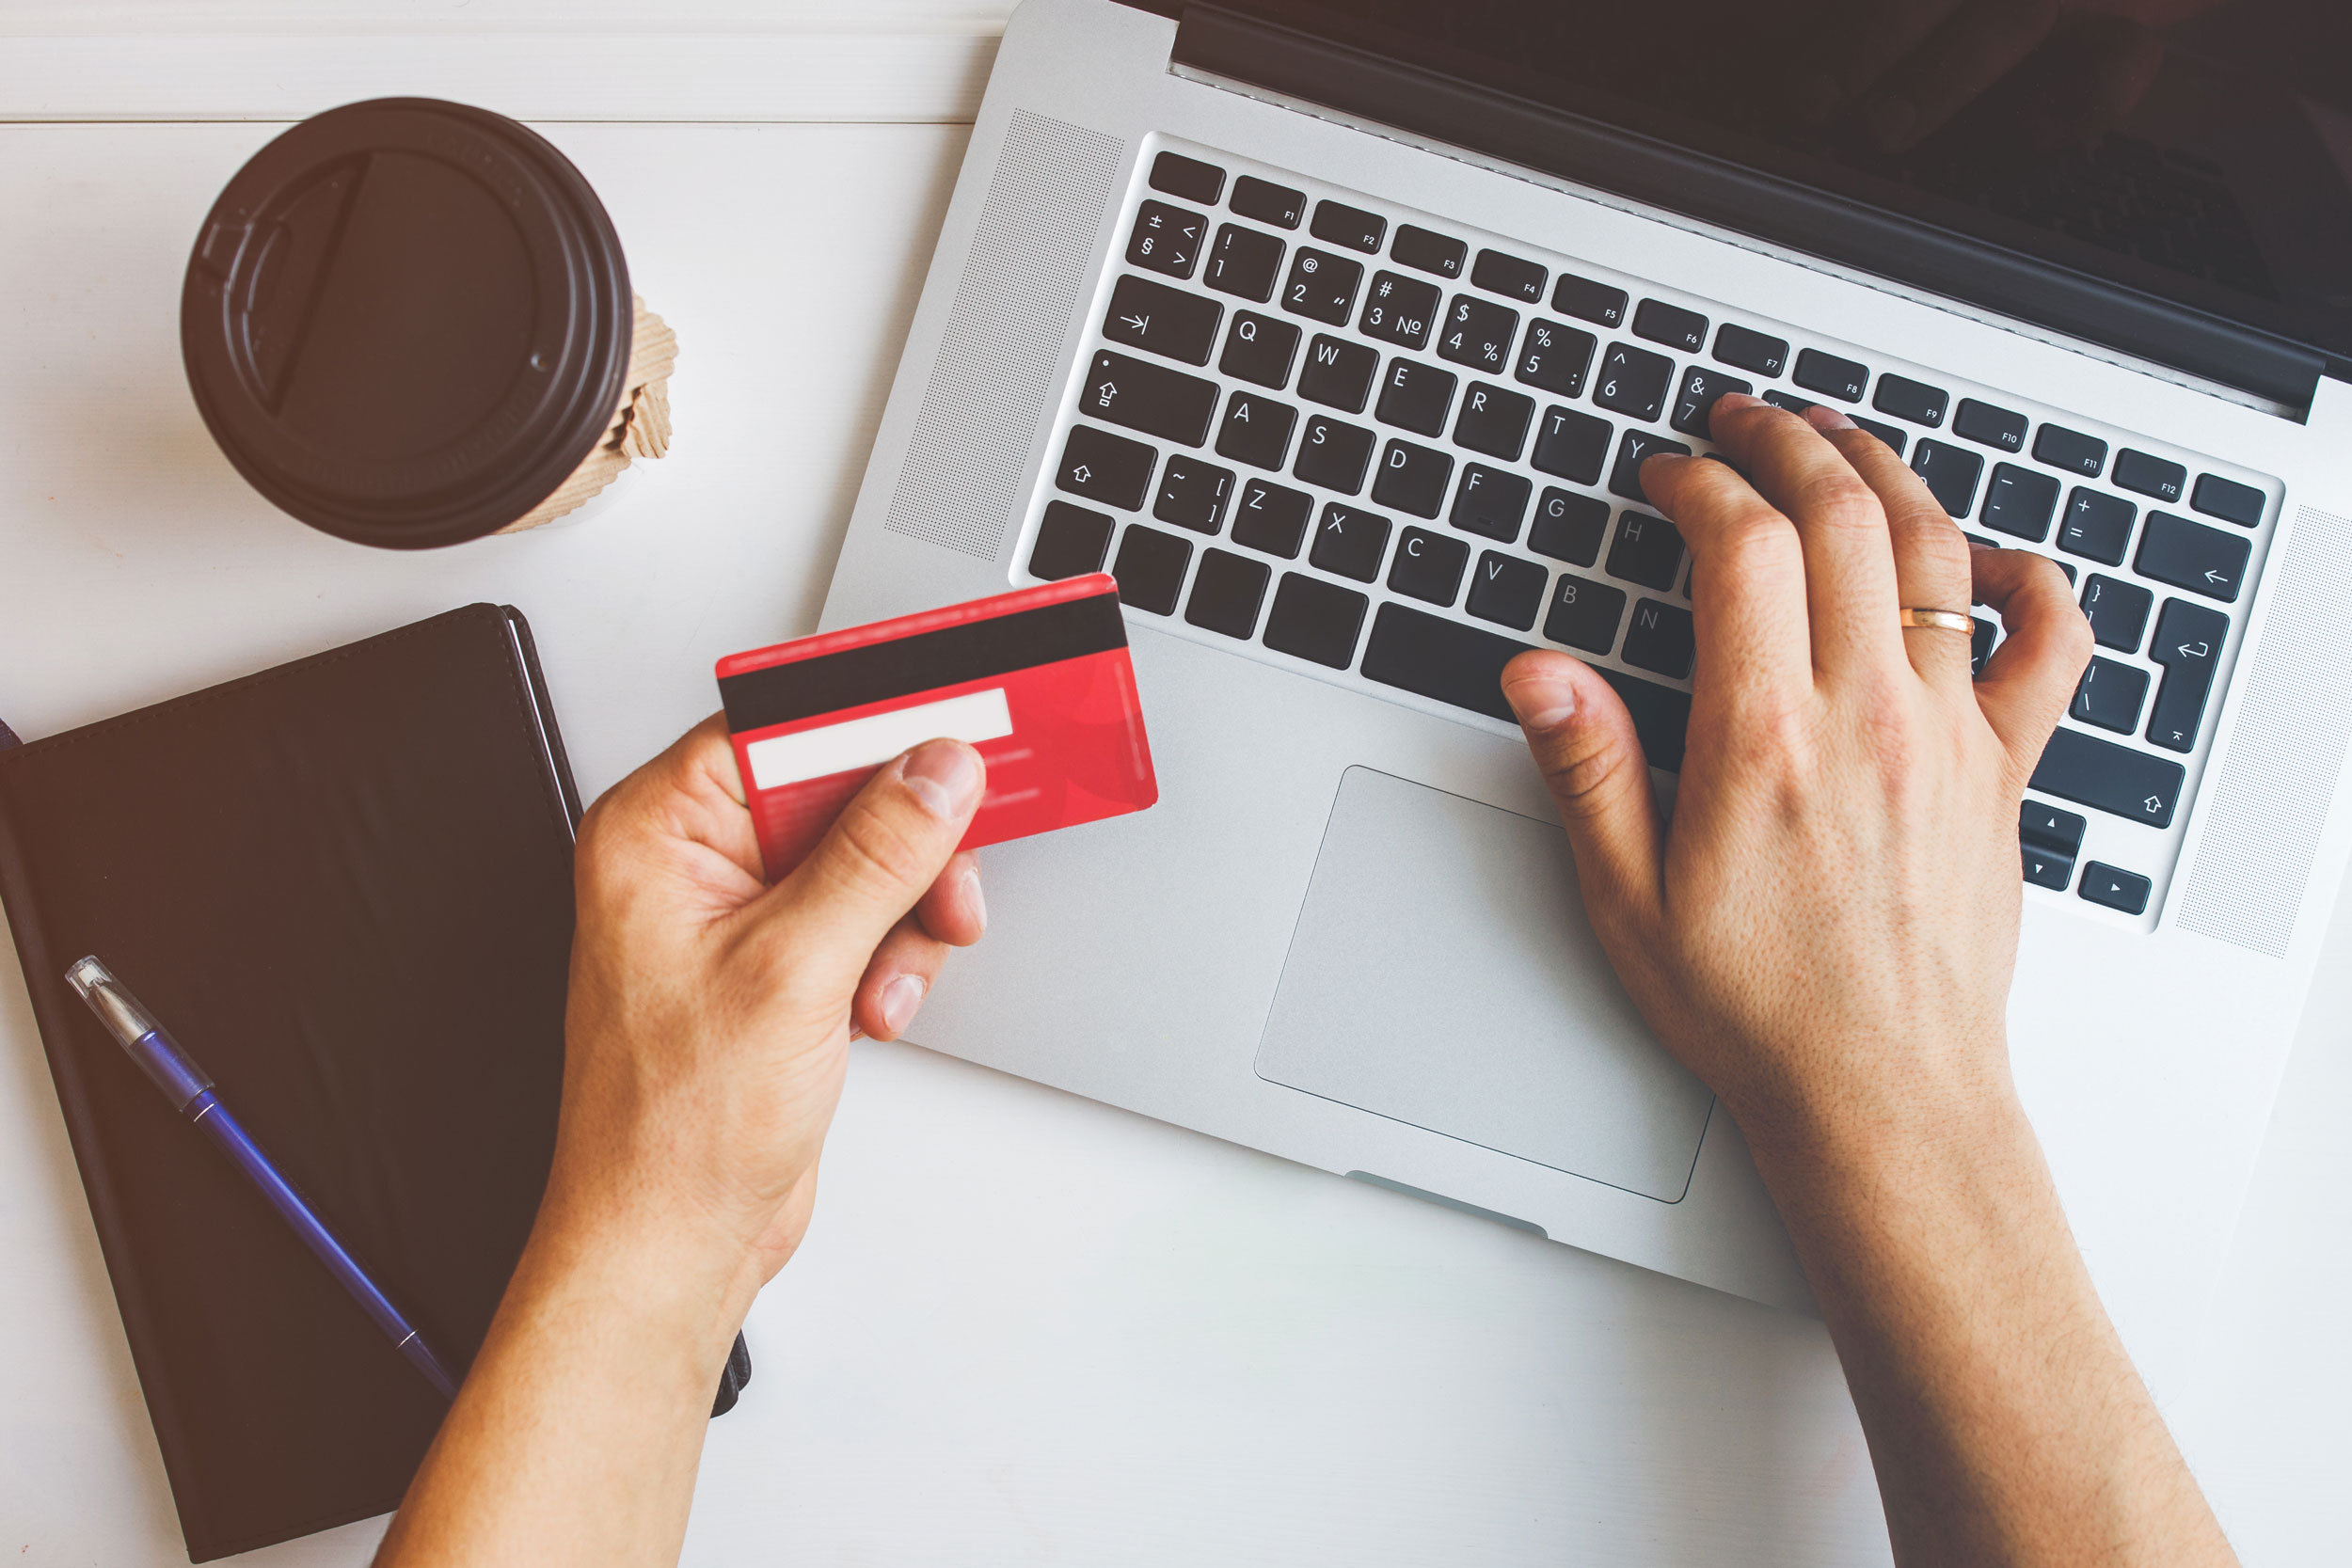 Pay Online - You can make a secure payment online using your checking account, savings account or debit card.